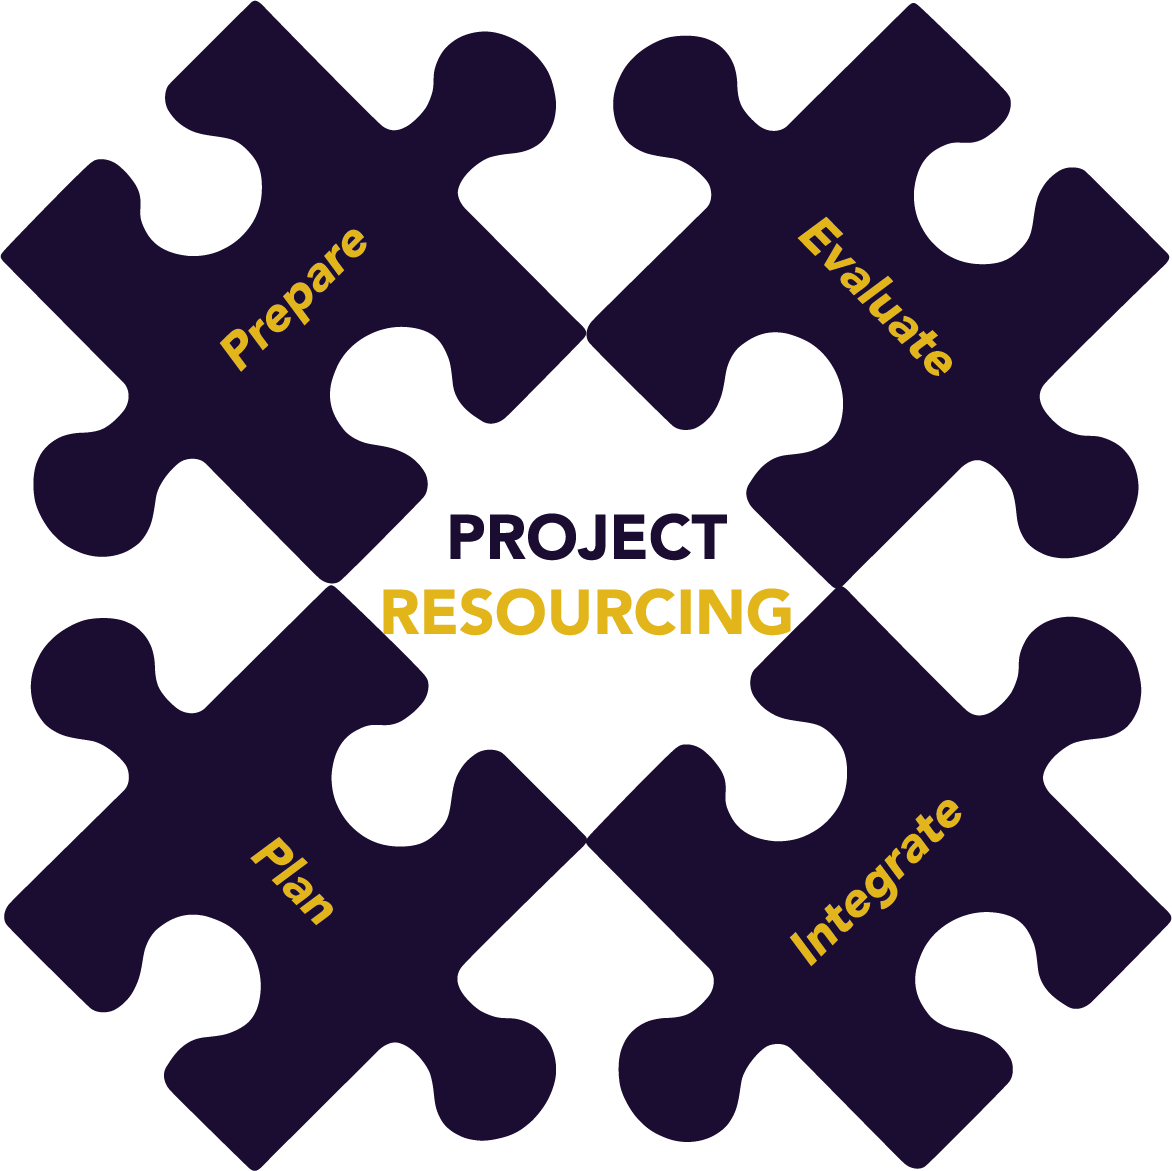 Project_Resourcing_OL